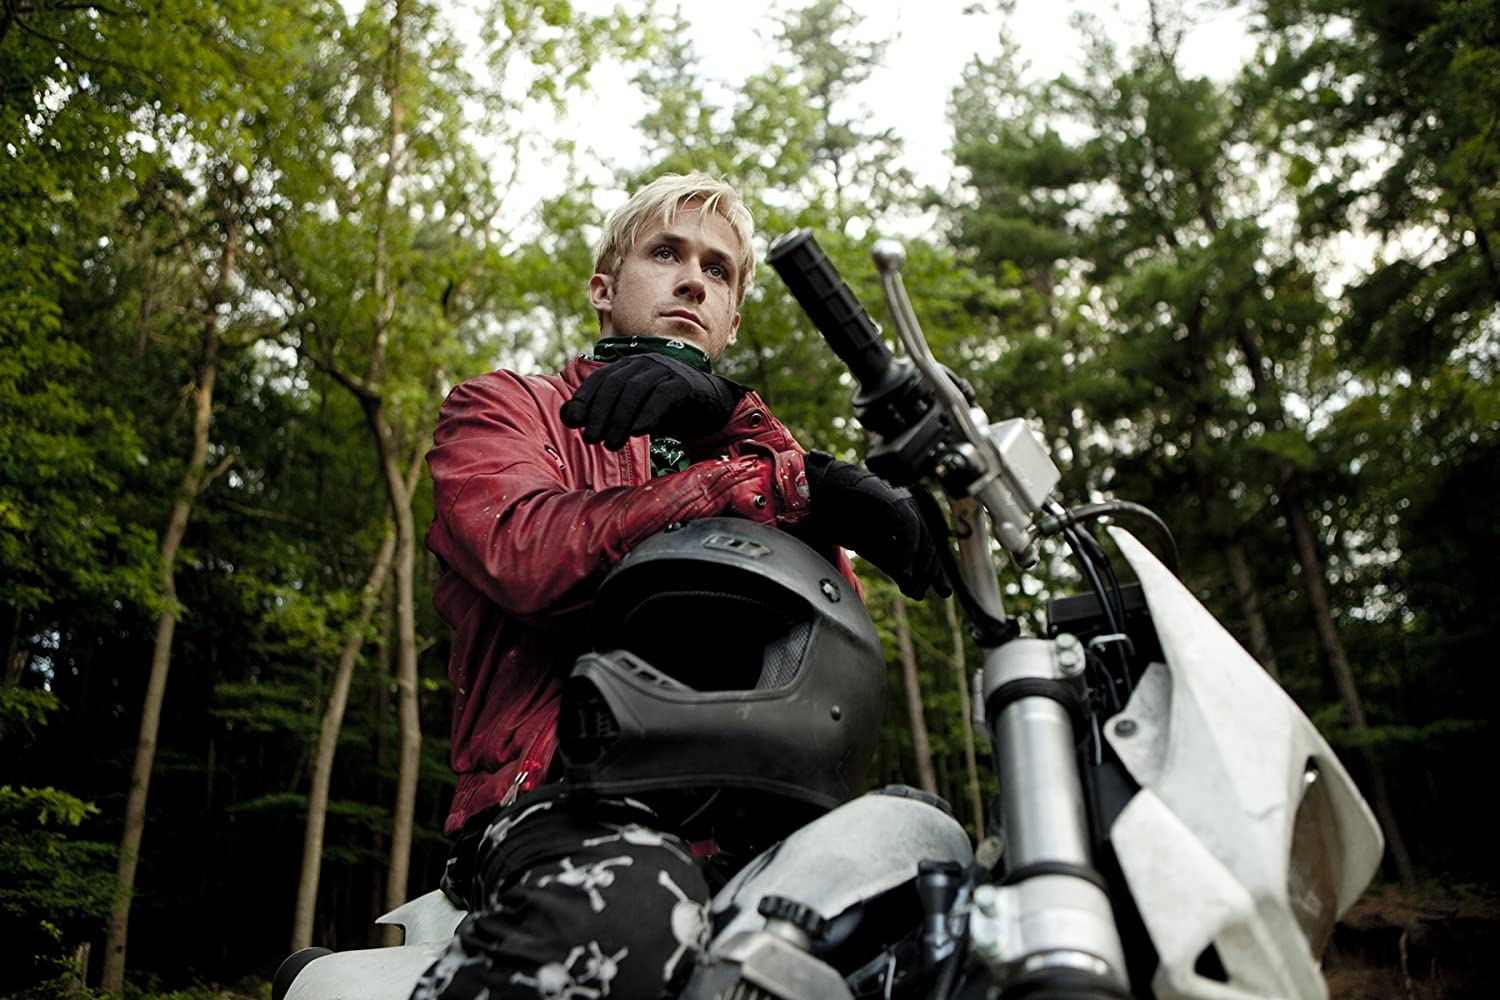 Ryan Gosling in The Place Beyond the Pines (2012)